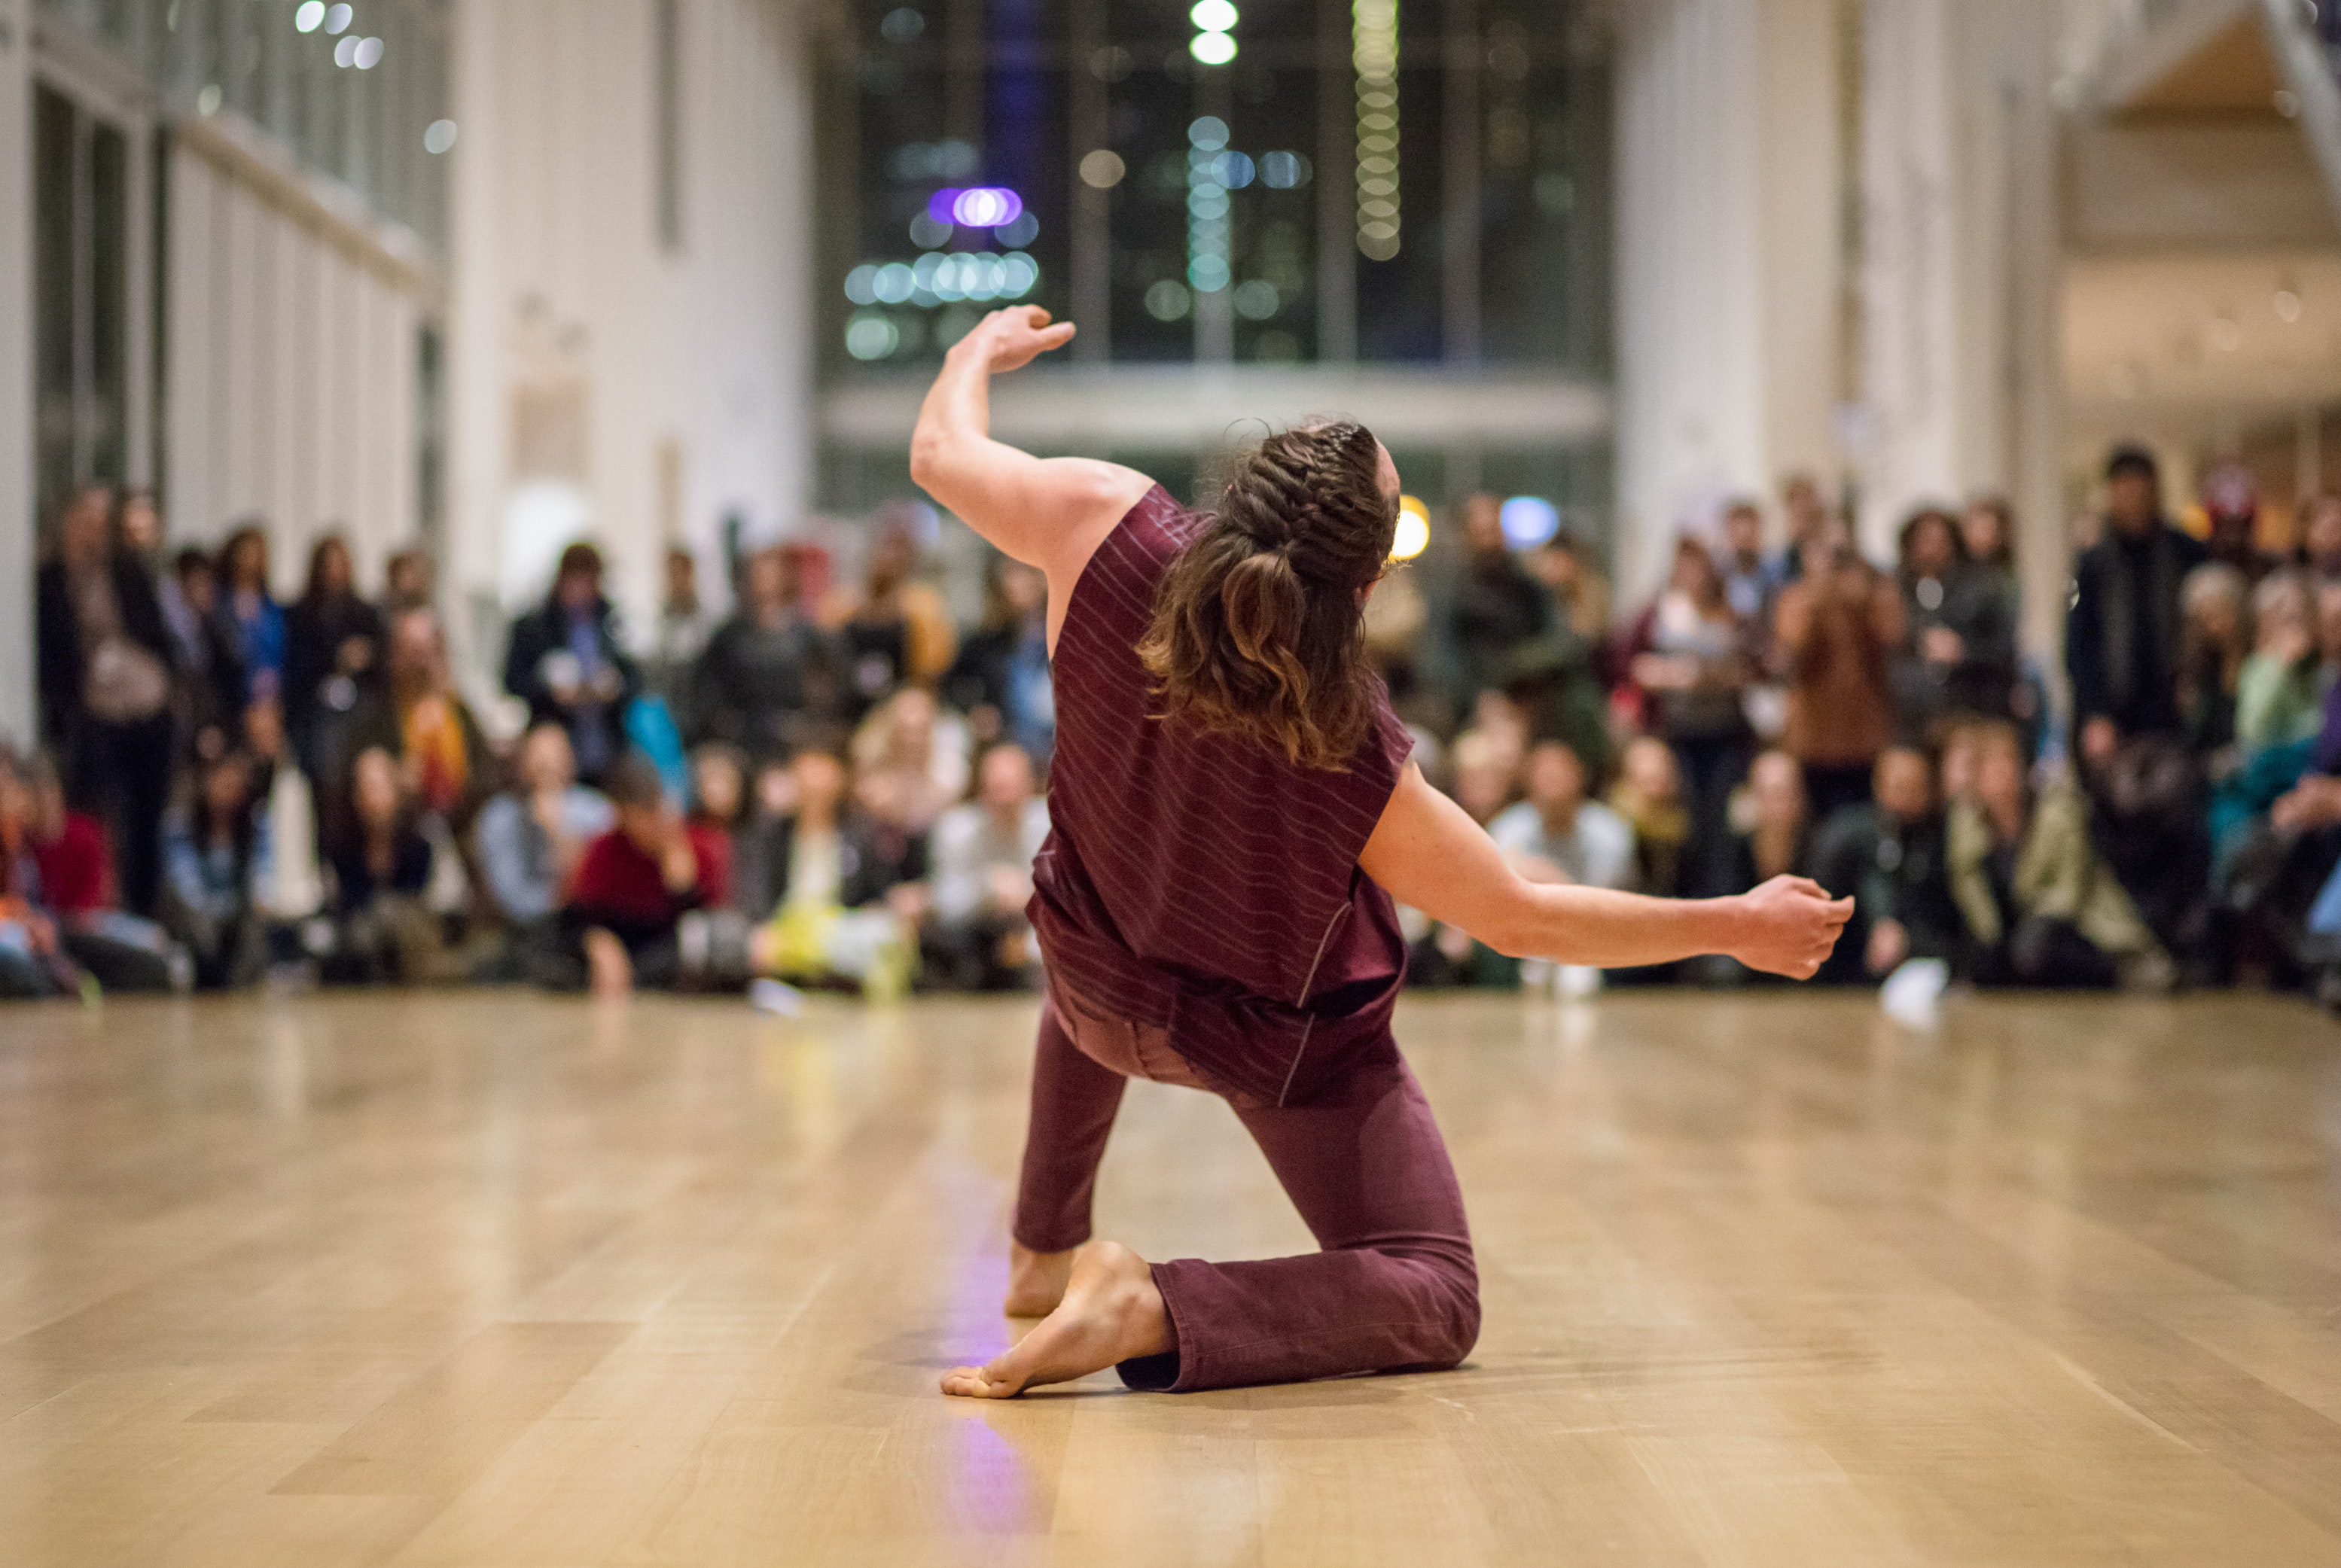 An artist performs in front of a large crowd in the museum's Modern Wing.